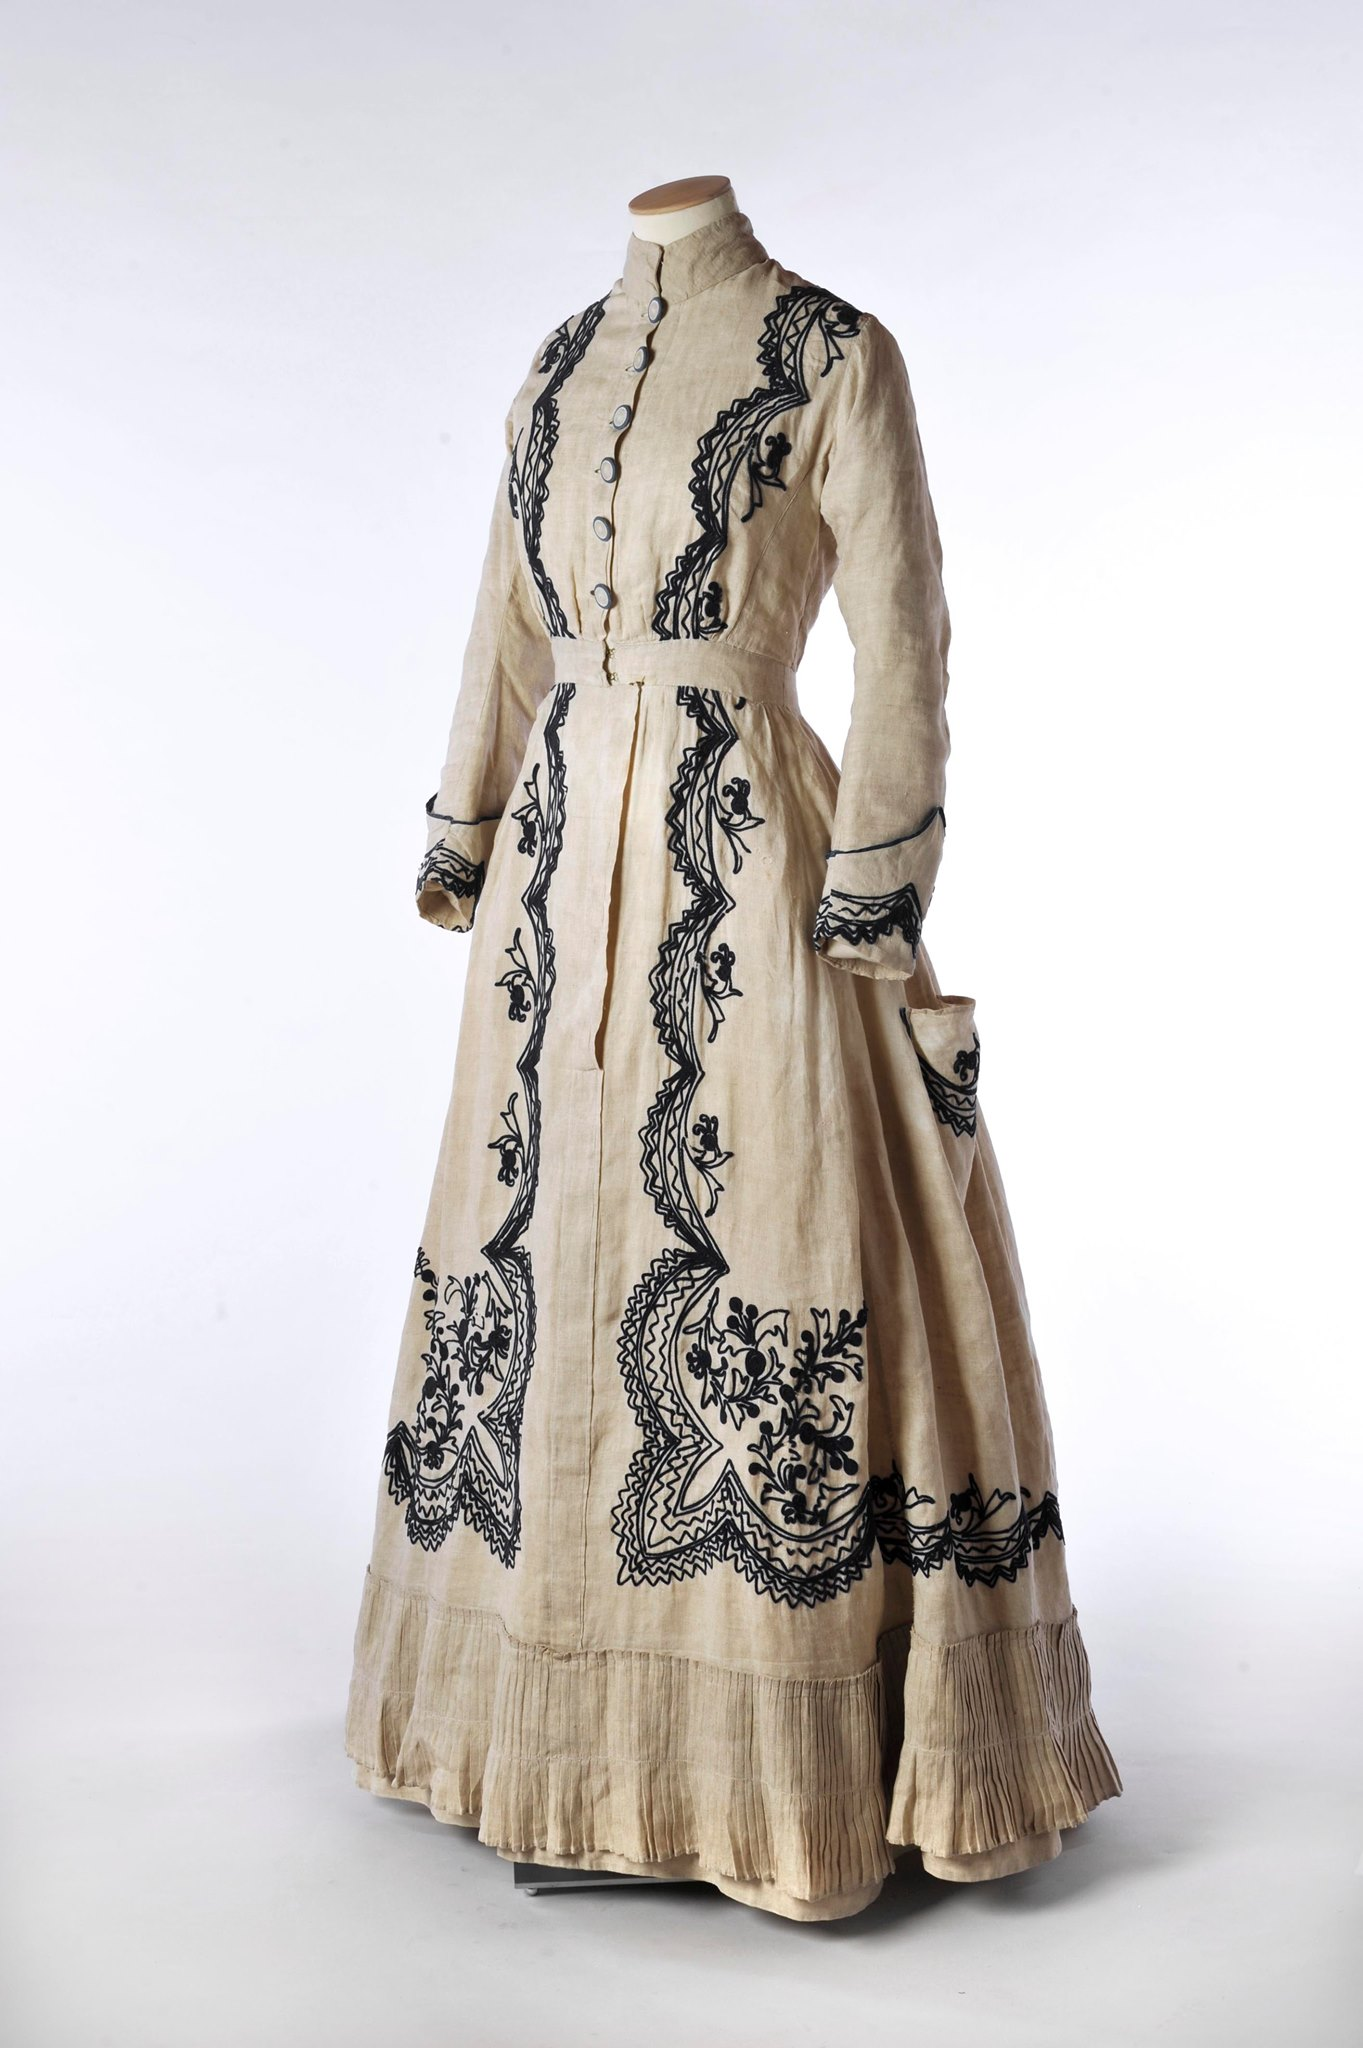 Image showing an ecru full length dress with buttons down the front and elaborate black embroidery